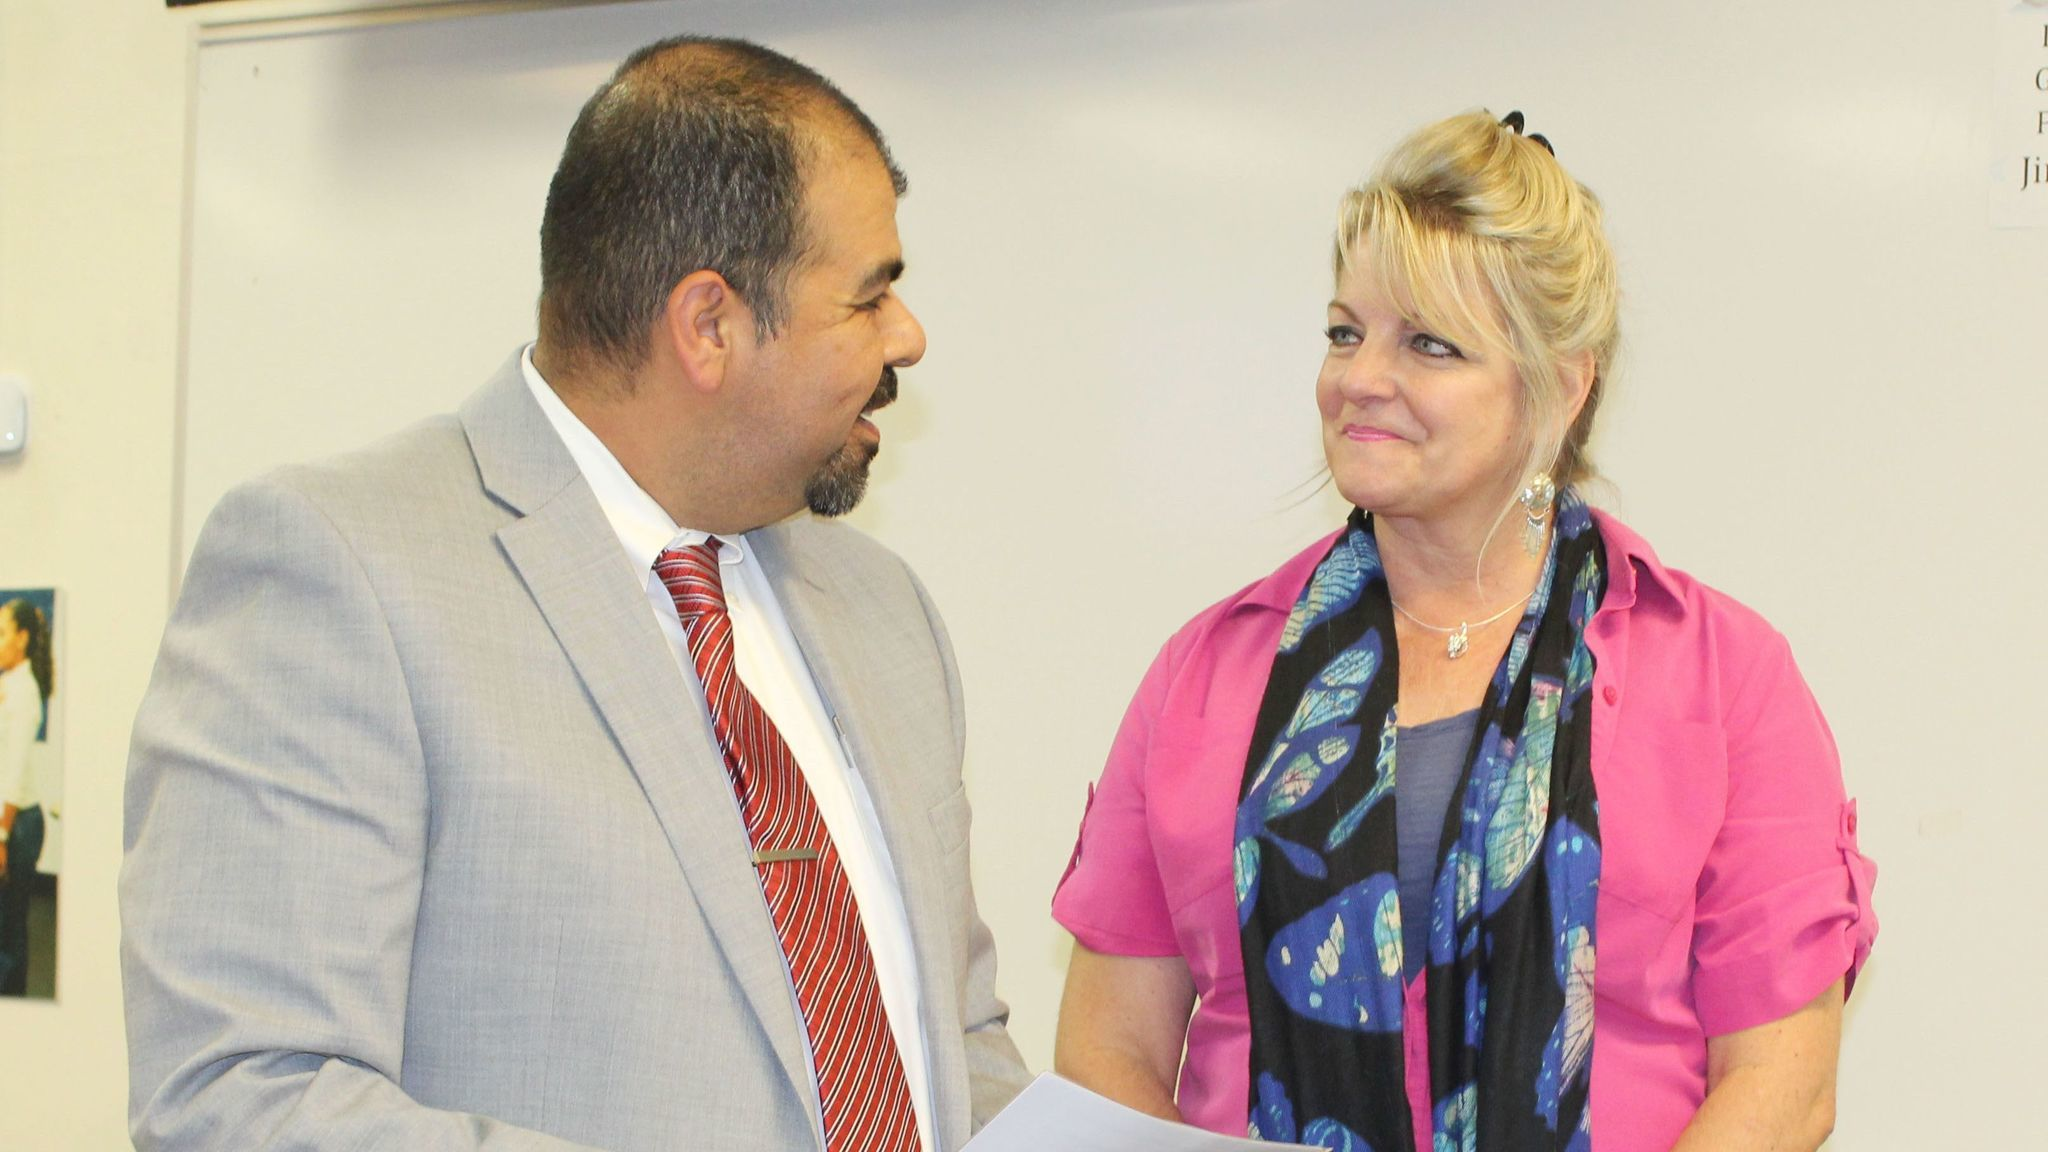 Assistant Superintendent of Human Resources Joel Garcia congratulates teacher Karin Yuhl on her retirement.